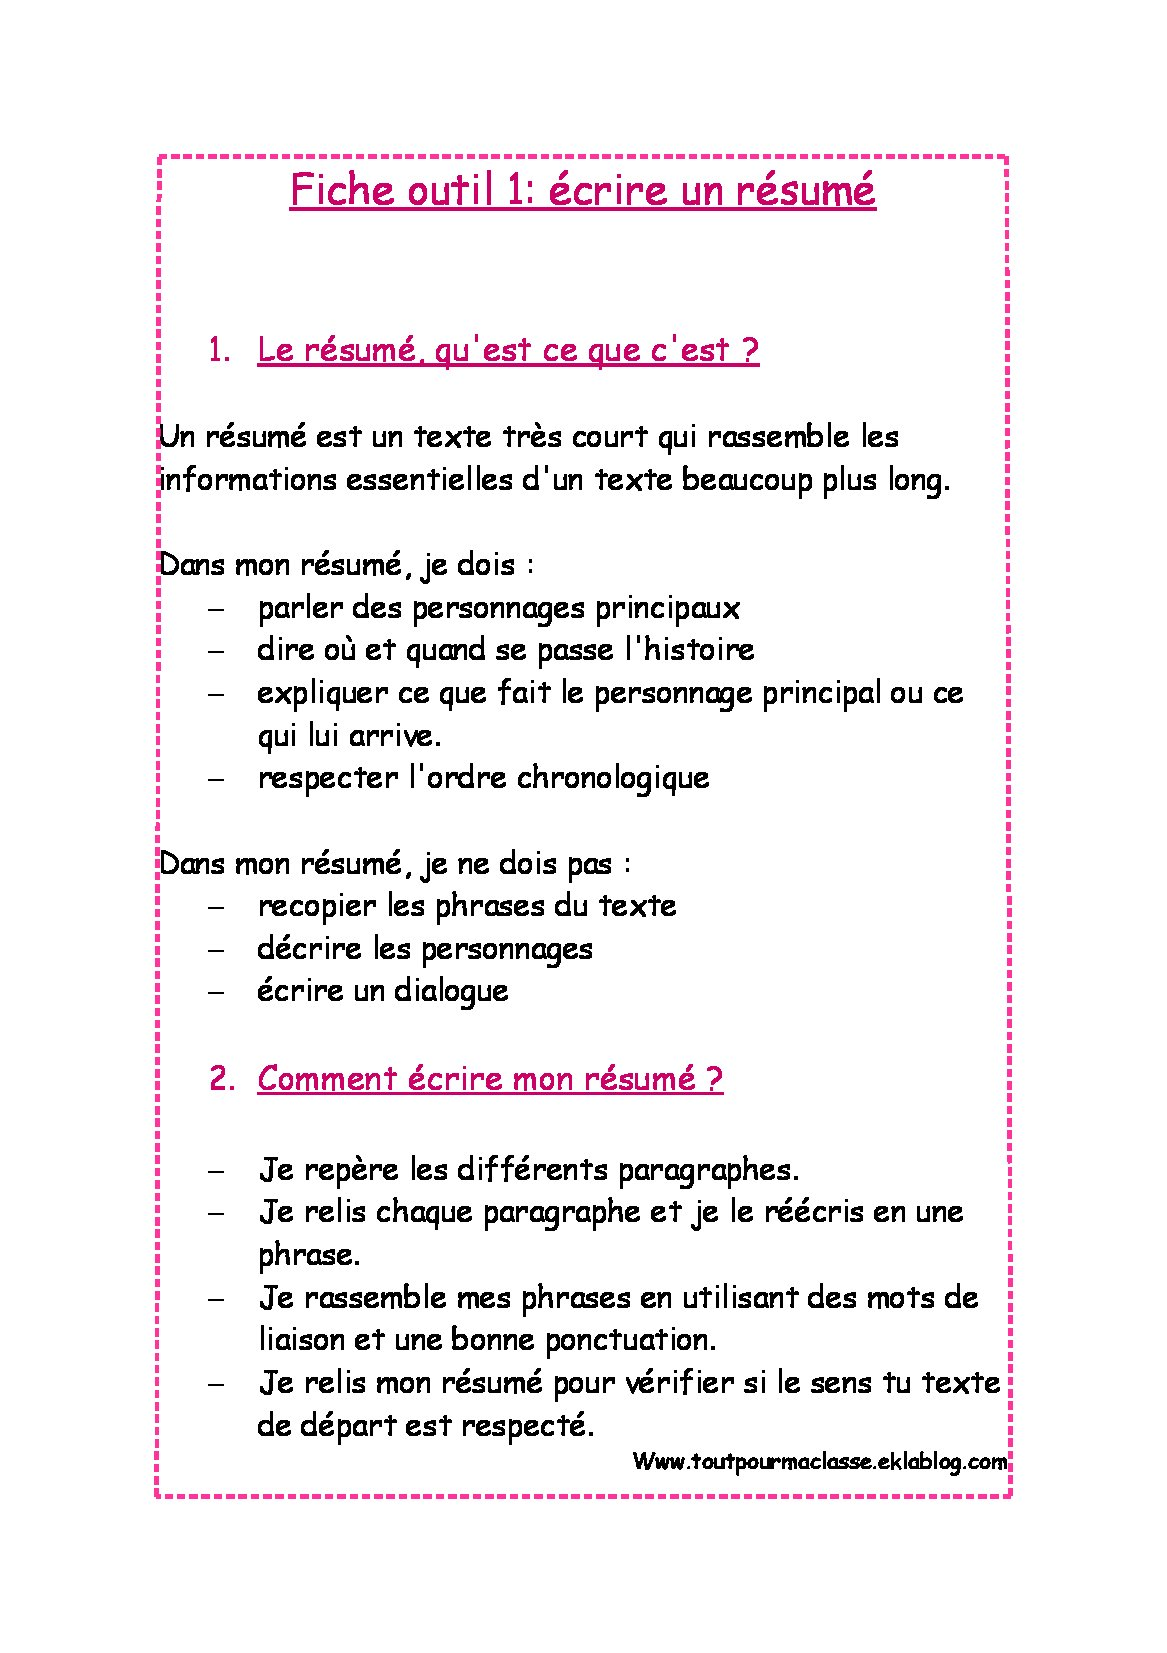 reussir le resume de texte   AbeBooks Pages d introduction